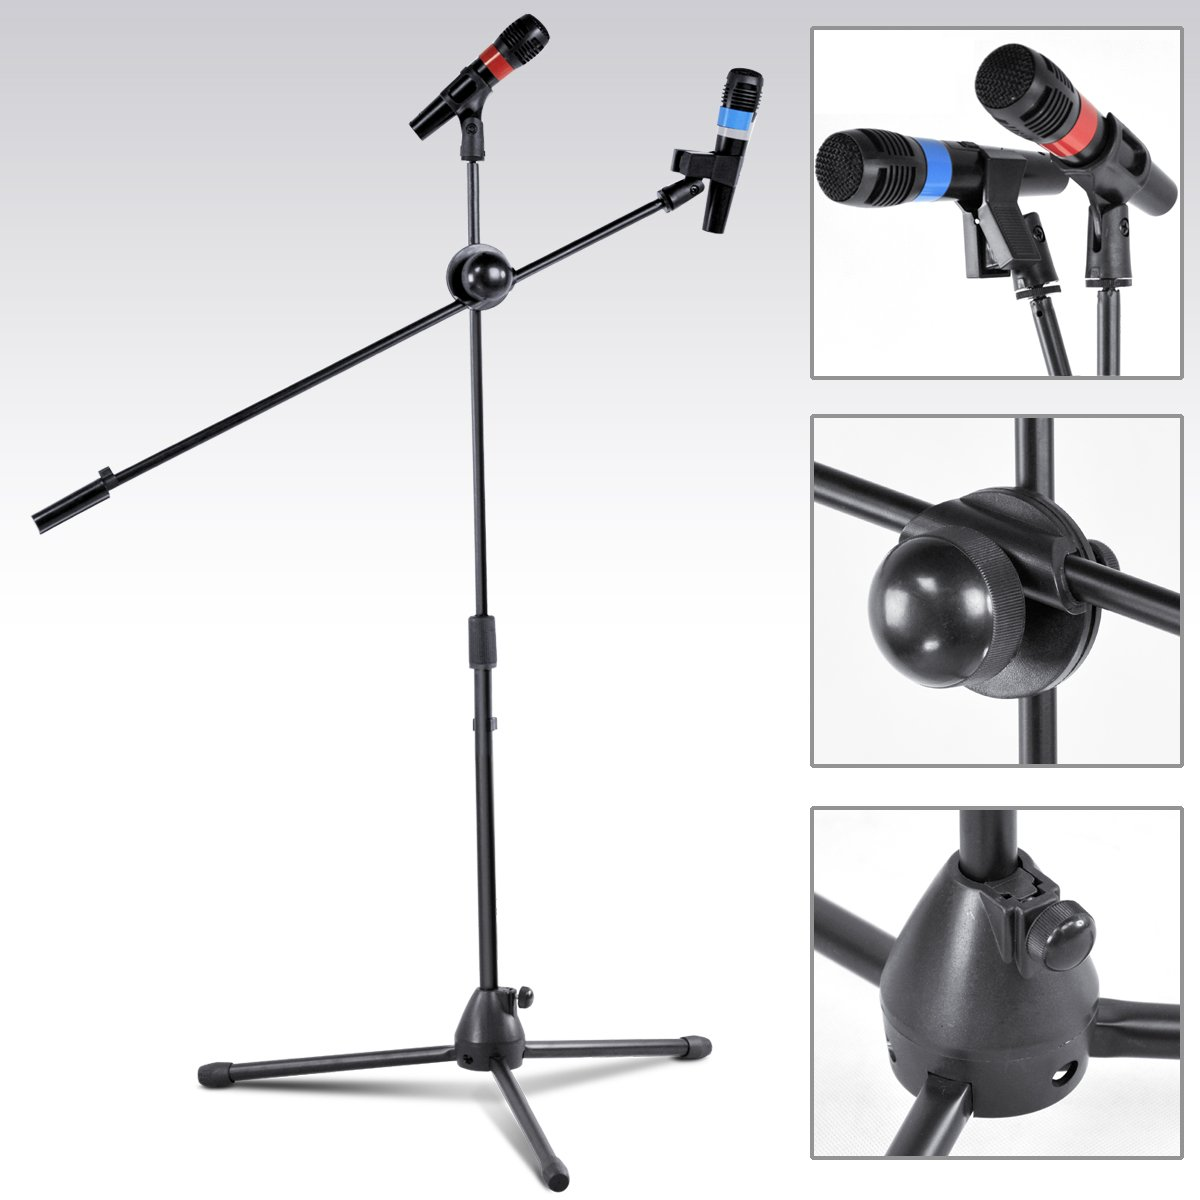 SODIAL(R) Mic Stand Professional On Tripod Adjustable Black with Free Microphone Clip